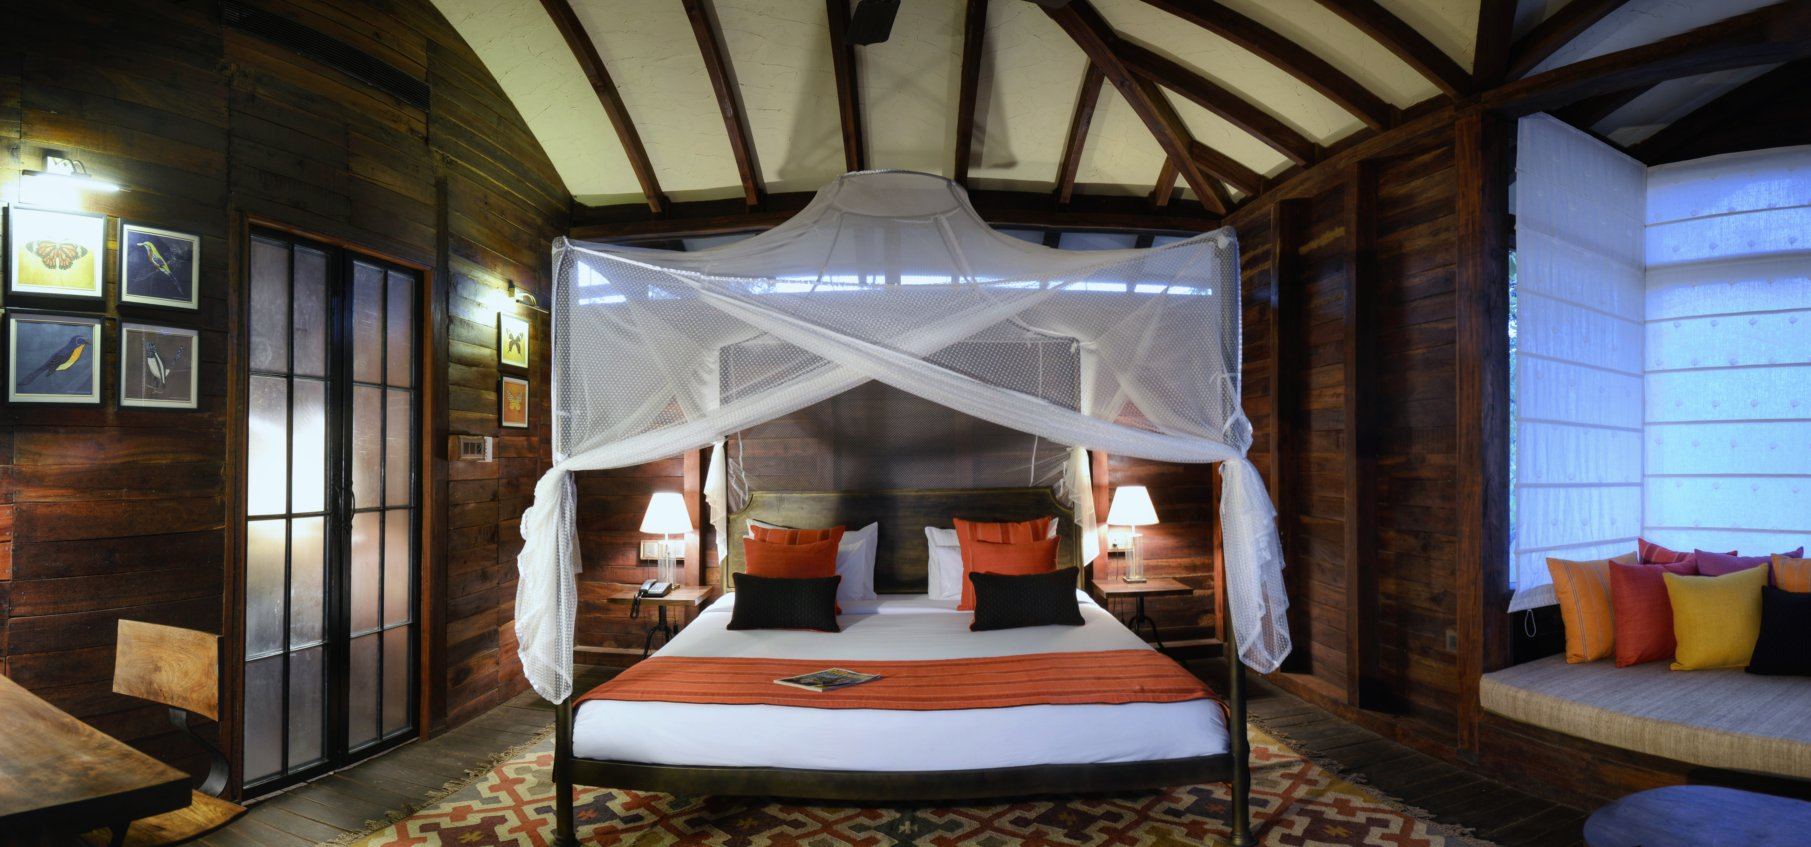 pench tree lodge inside view